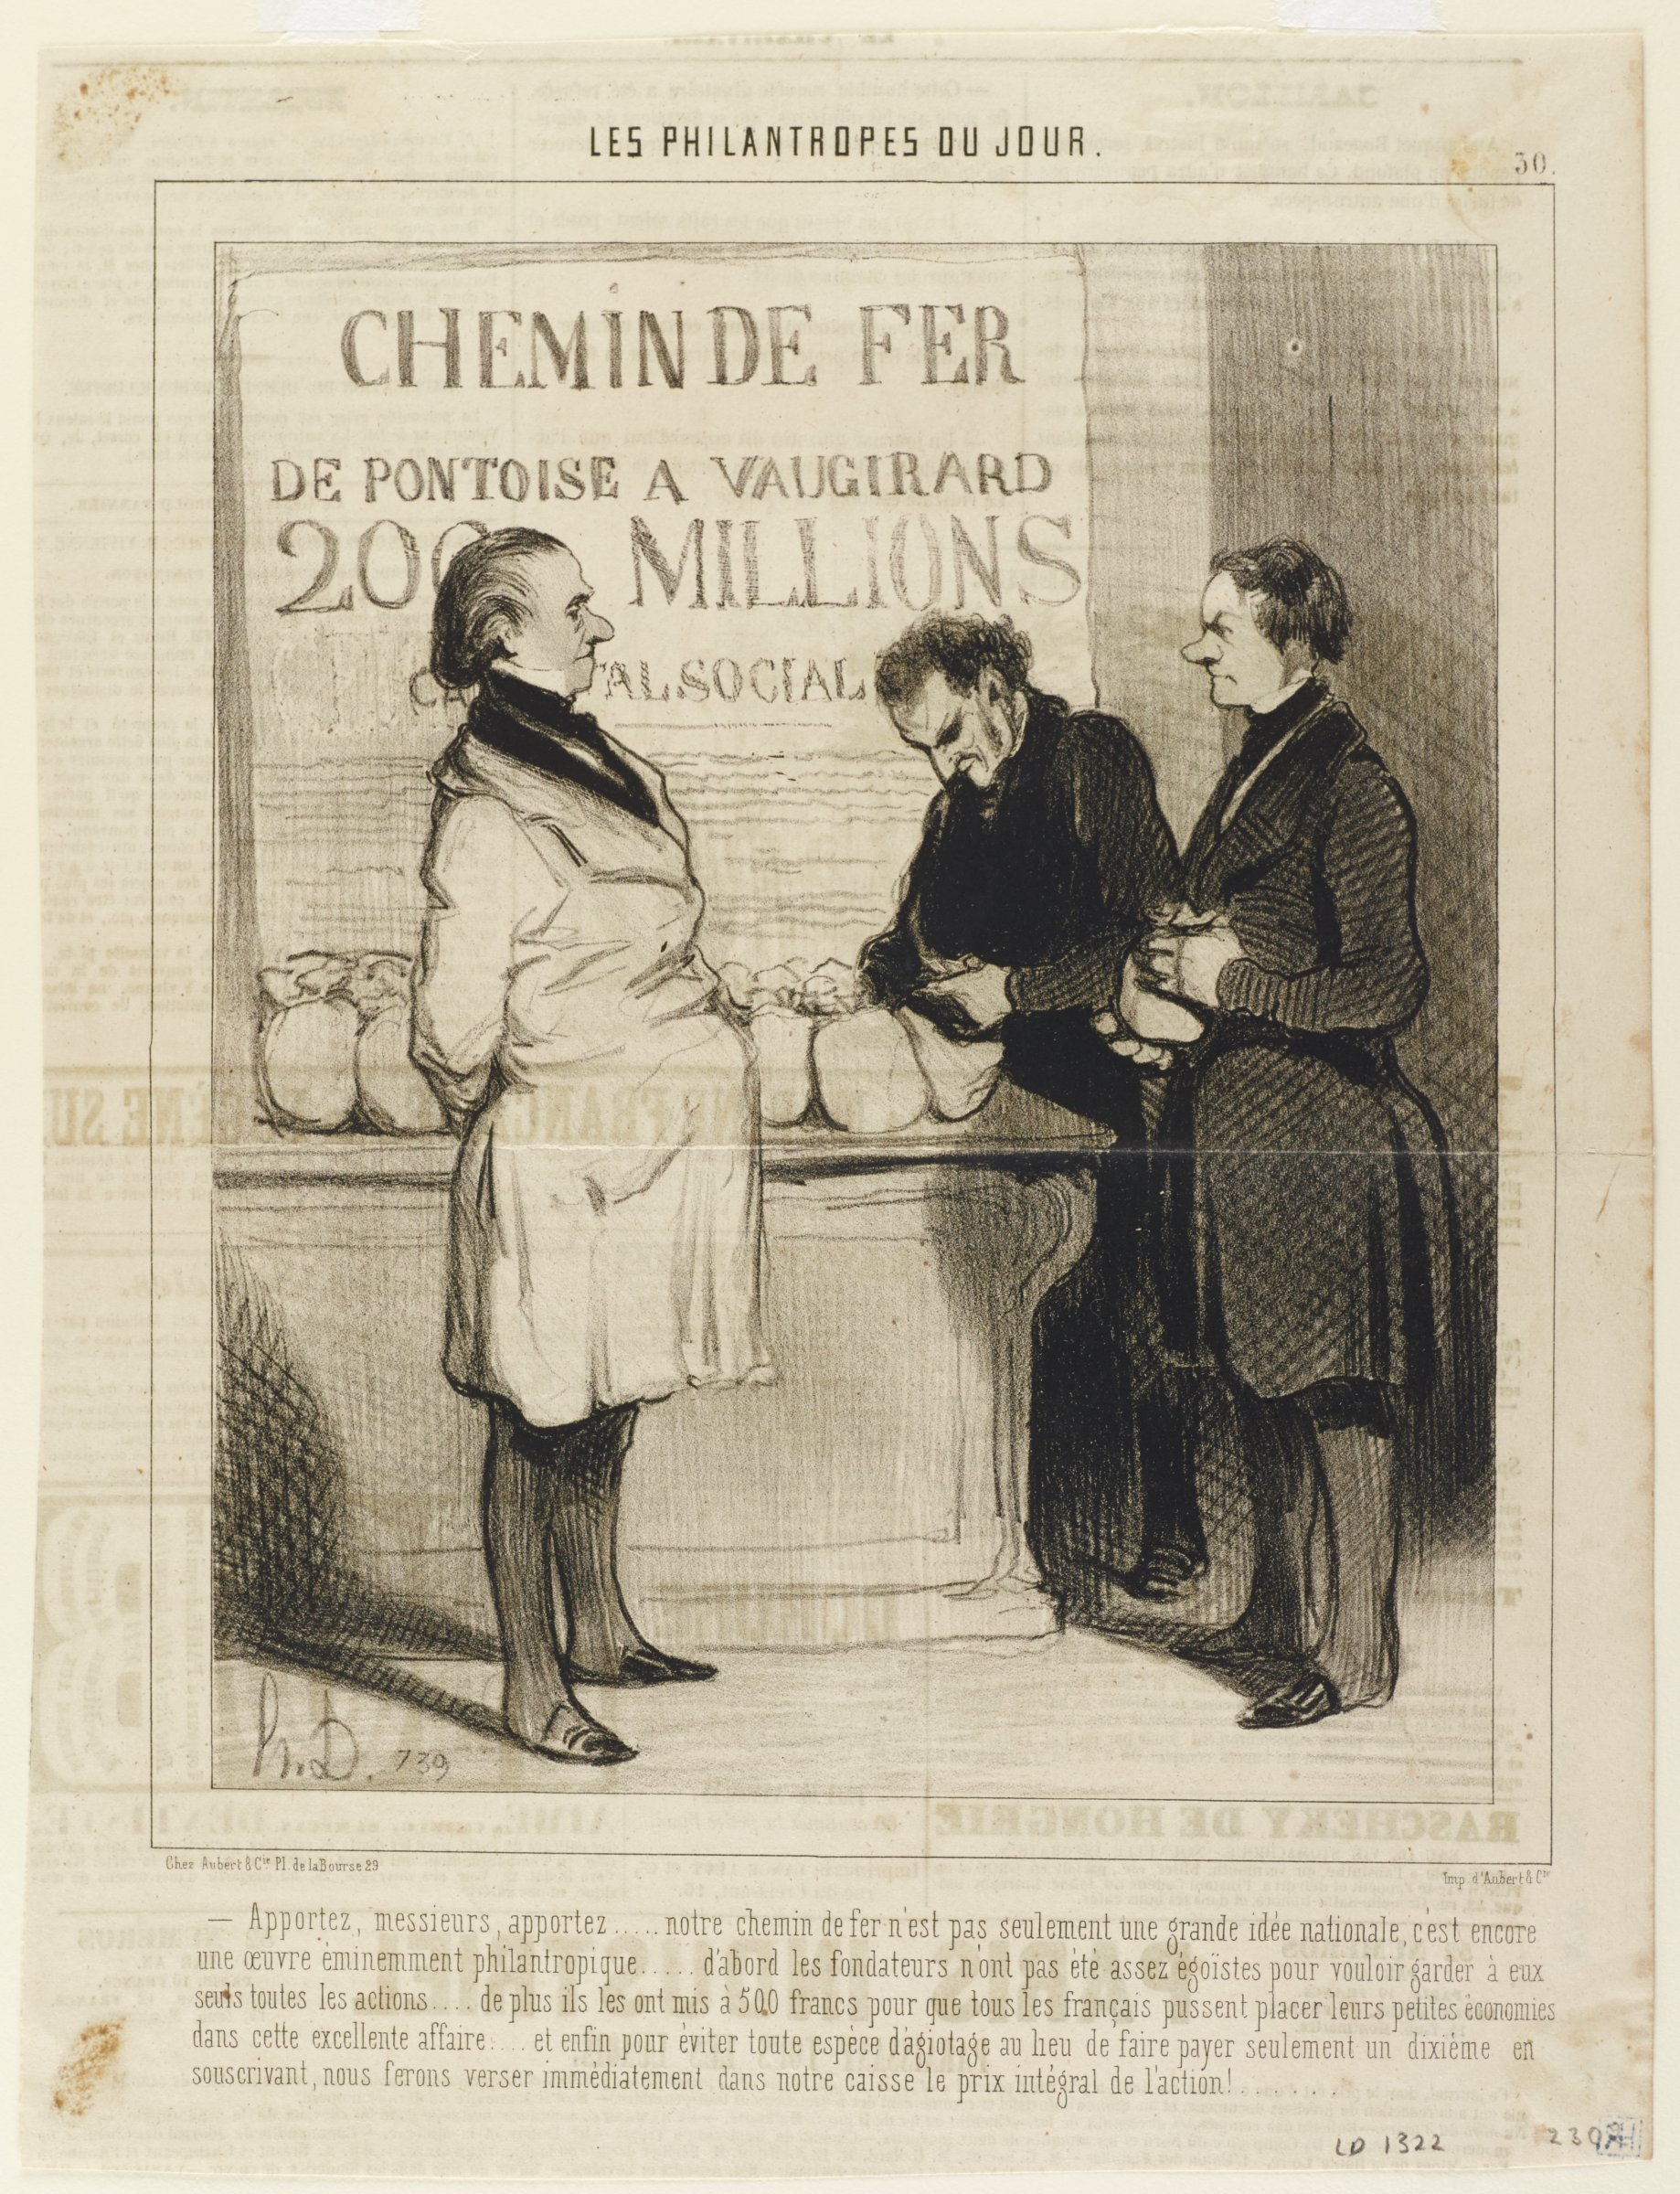 Three men in knee length coats stand around a booth full of small bags. A sign hangs above the booth.